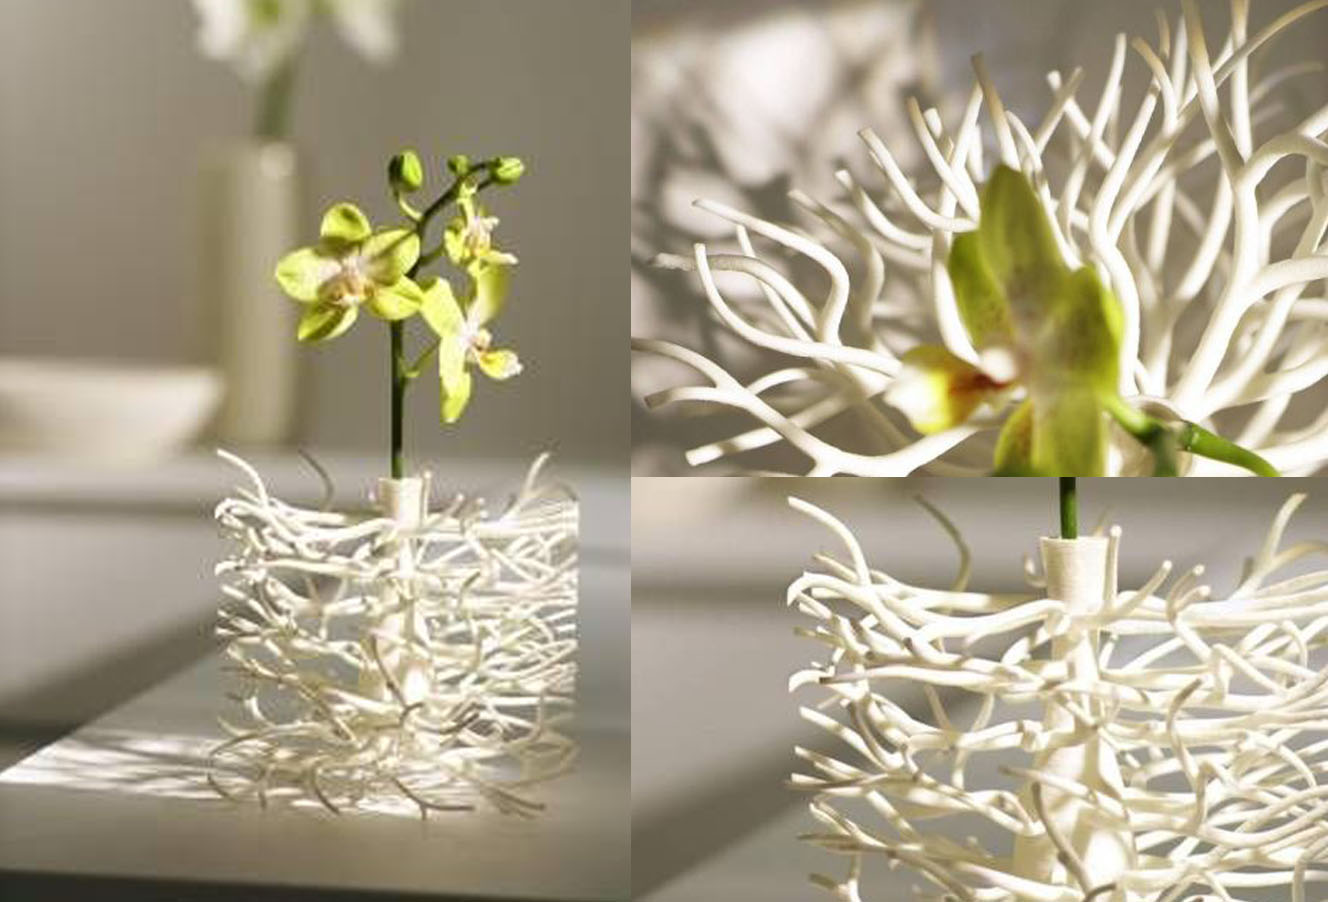 Design By: 20 Creative And Modern Vase Designs